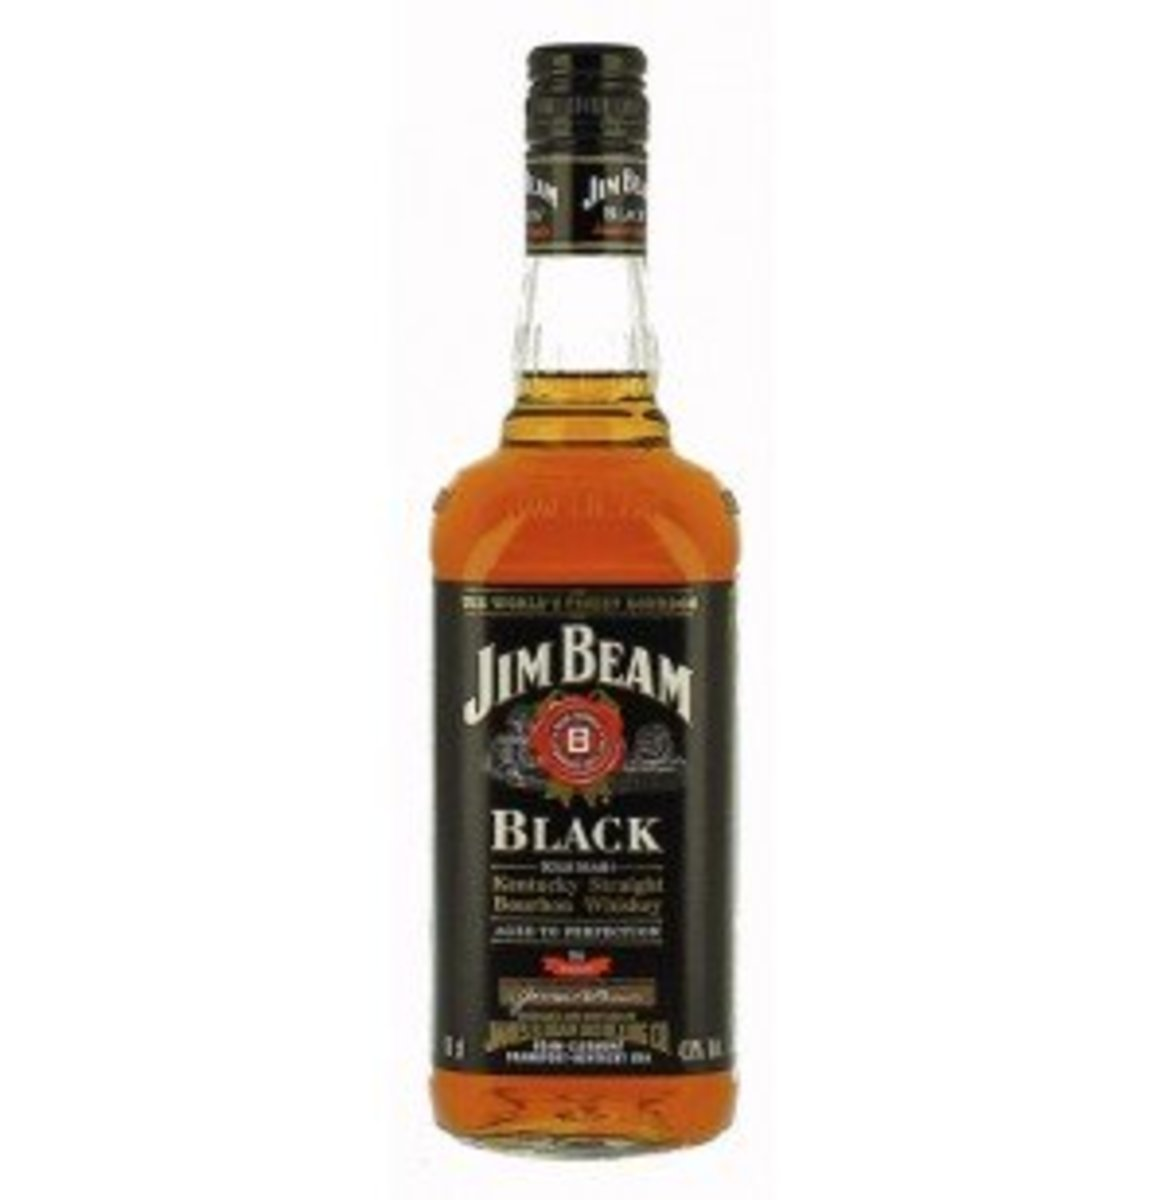 Jim Beam Black Label. A much more subtle and complex whiskey than the White Label, thanks to a large degree to 8 years of aging. Jim Beam is the world's biggest selling bourbon and a great introduction to bourbon drinking.